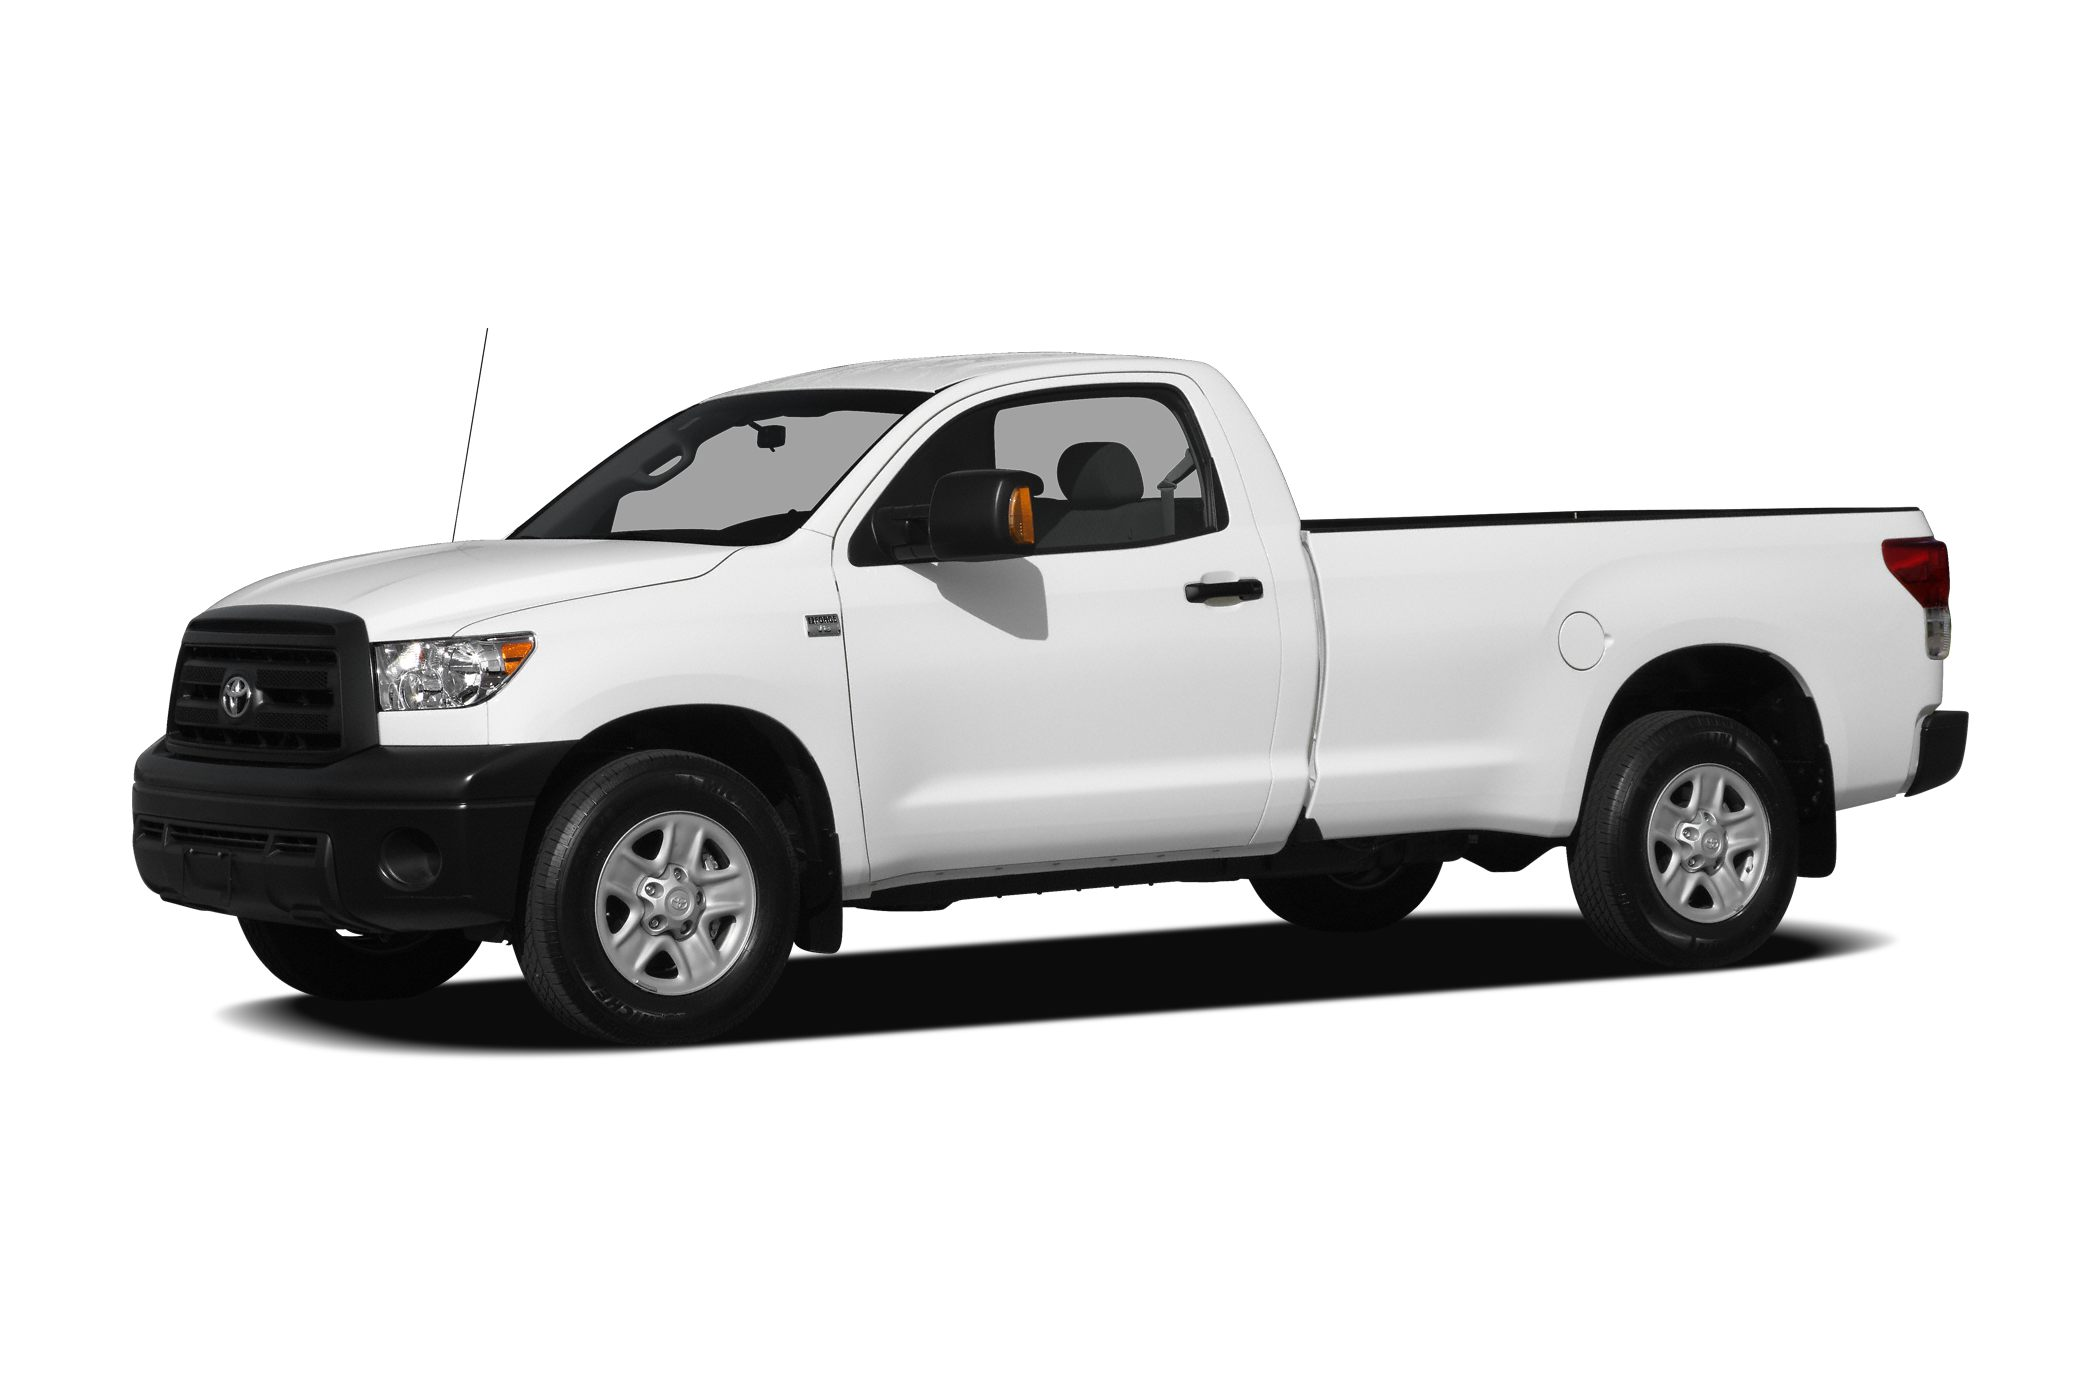 2012 Toyota Tundra Grade Crew Cab Pickup for sale in Mobile for $26,495 with 97,251 miles.